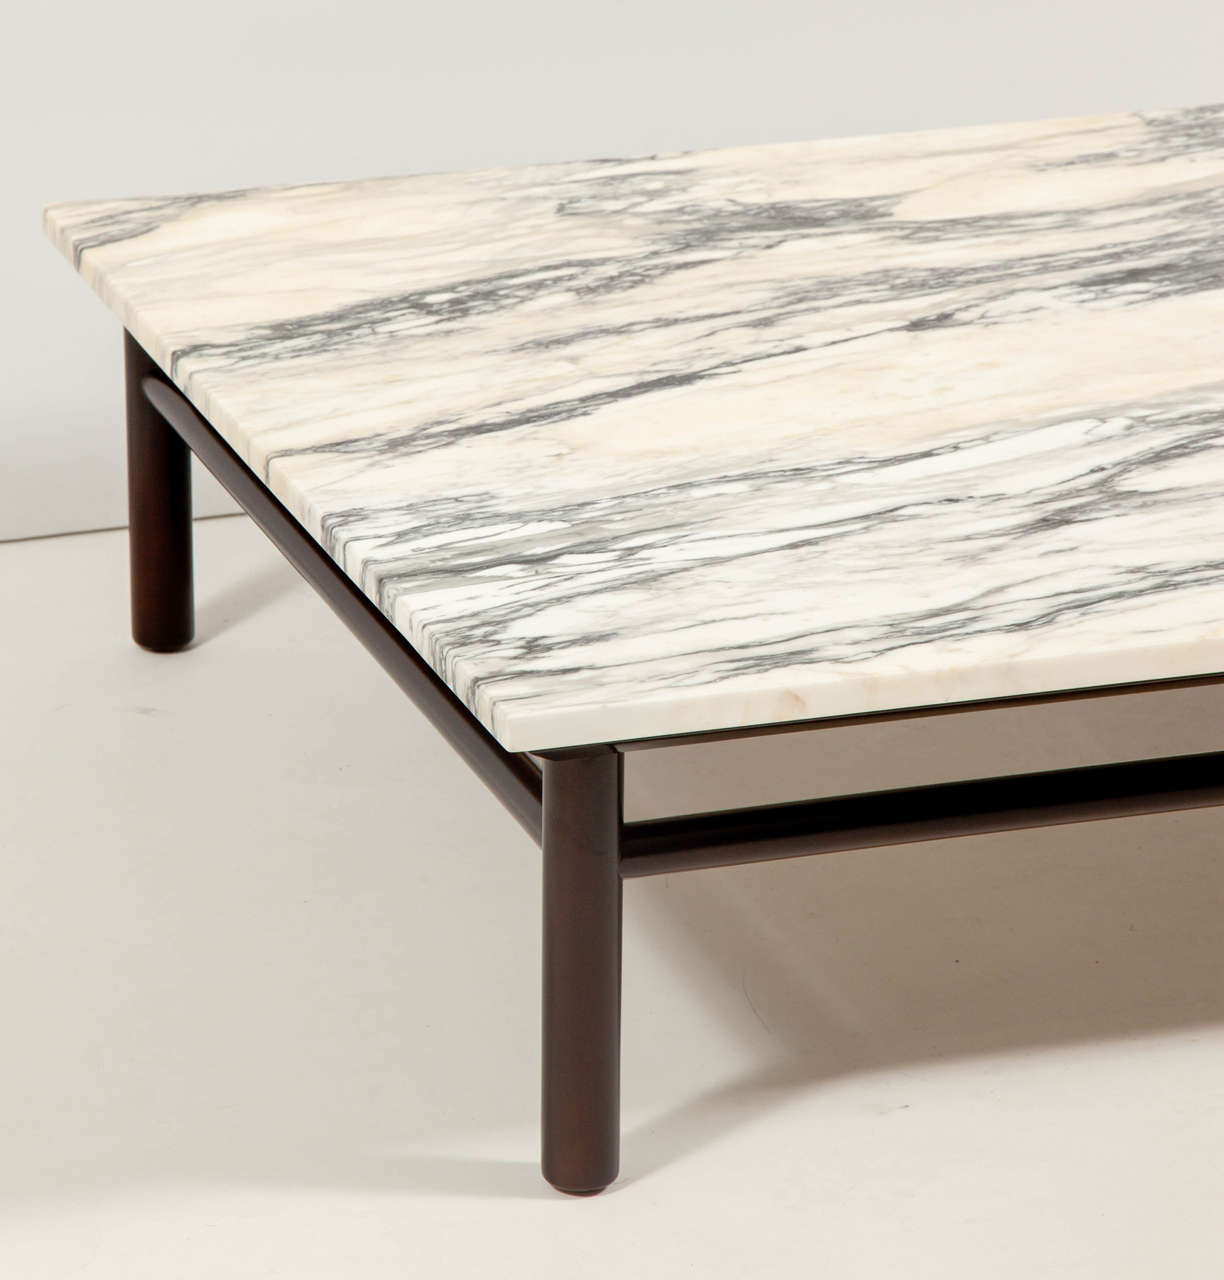 American Robsjohn-Gibbings Walnut and Marble Coffee Table For Sale